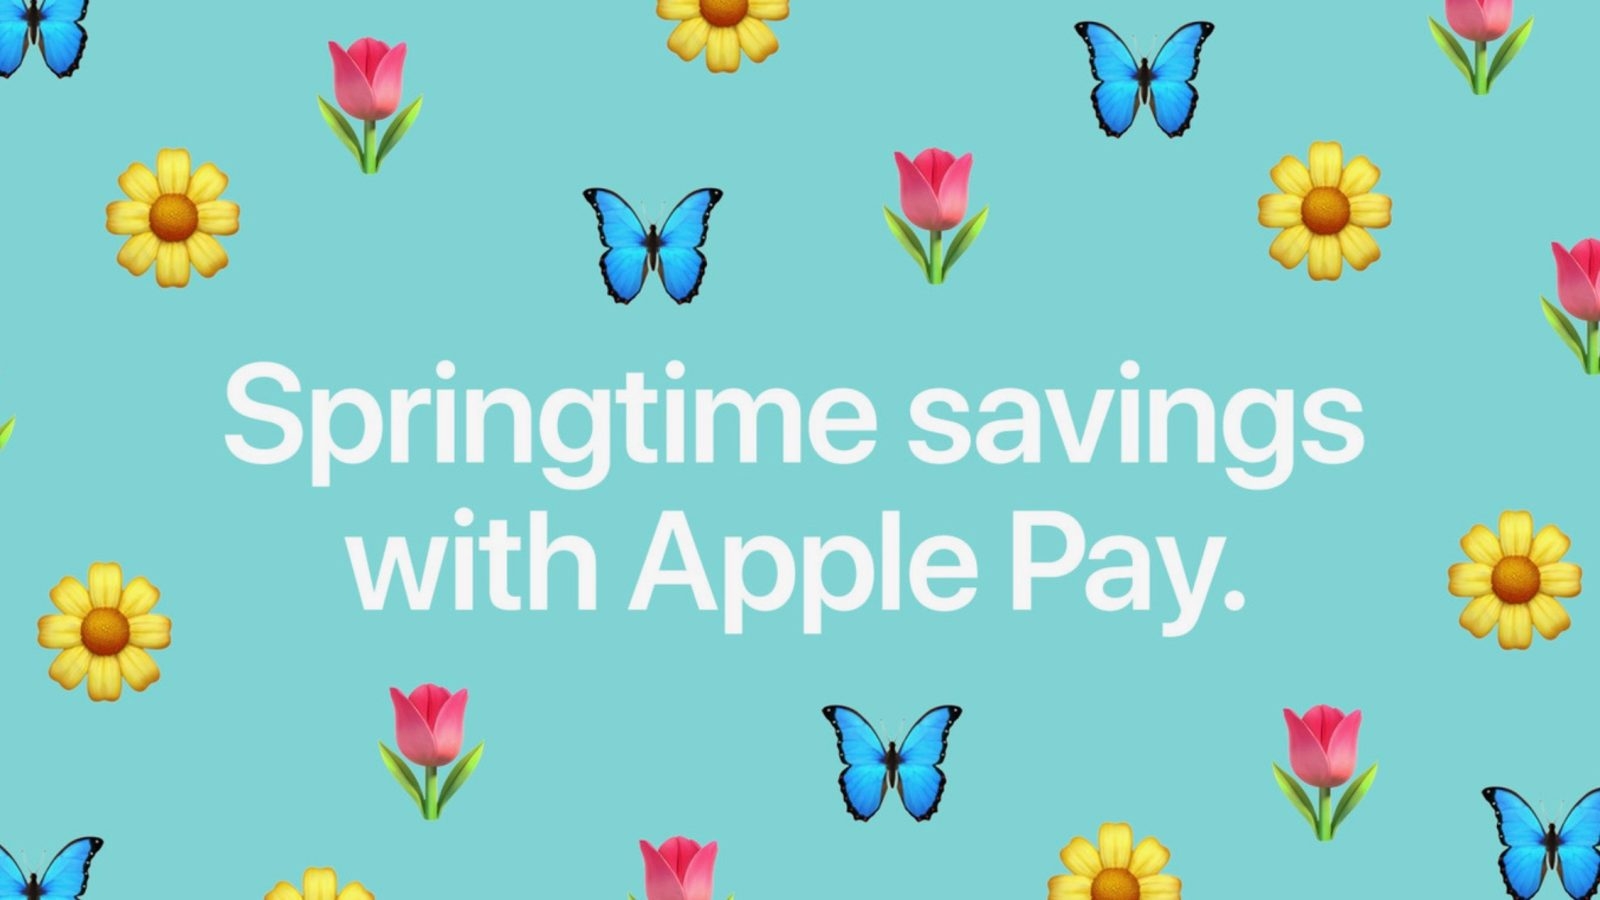 Apple launches 'Springtime Savings' Apple Pay deals with Postmates, Wayfair, more